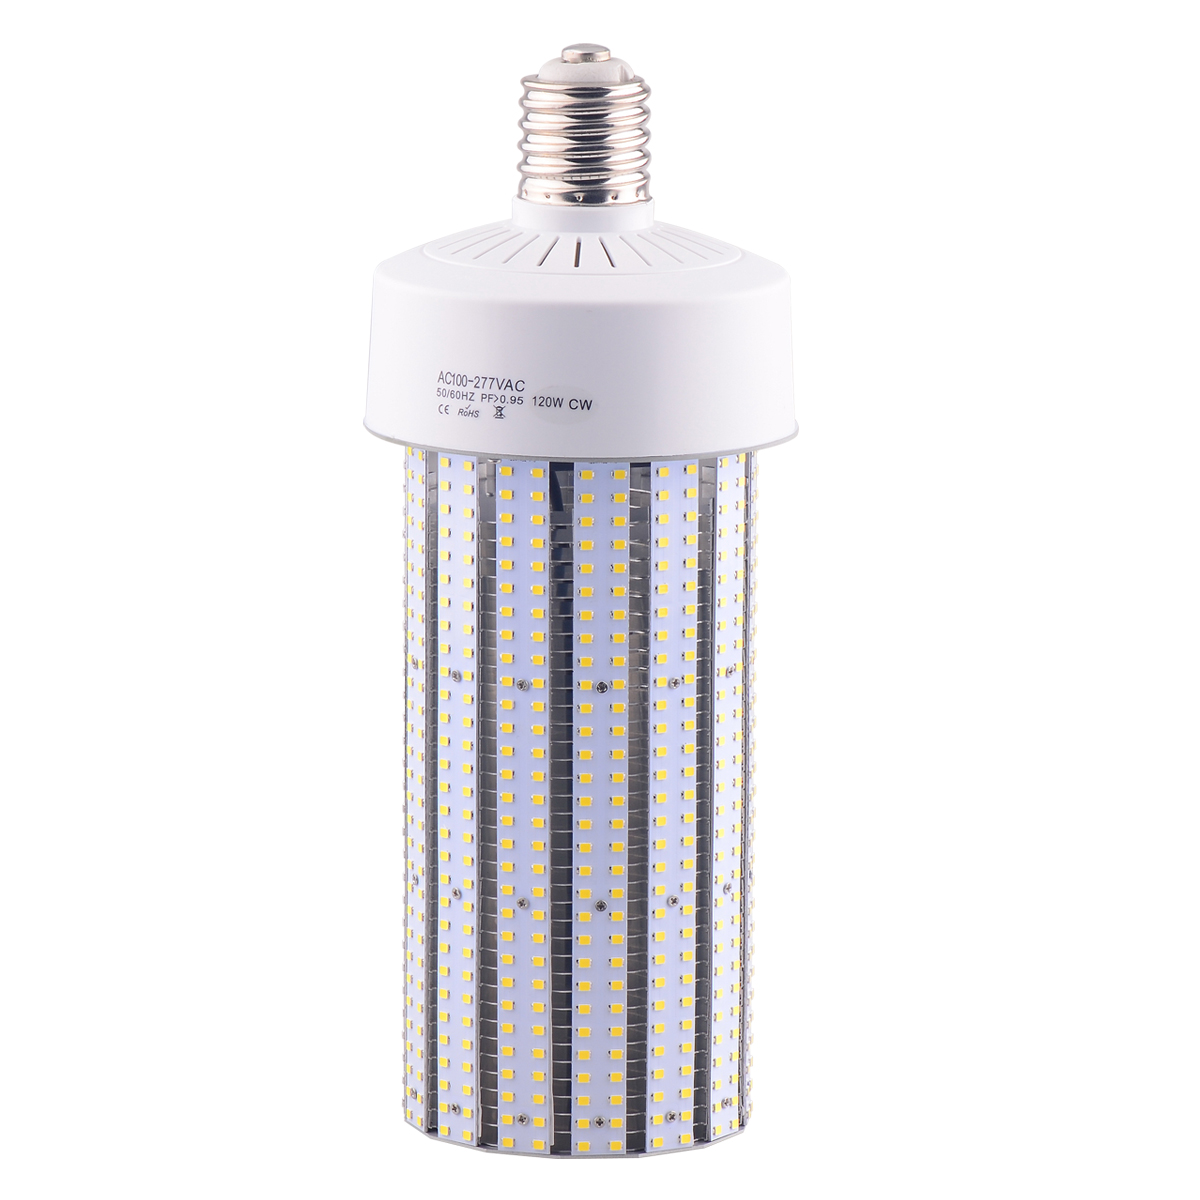 100 Watt Led Corn Cob Light (8)